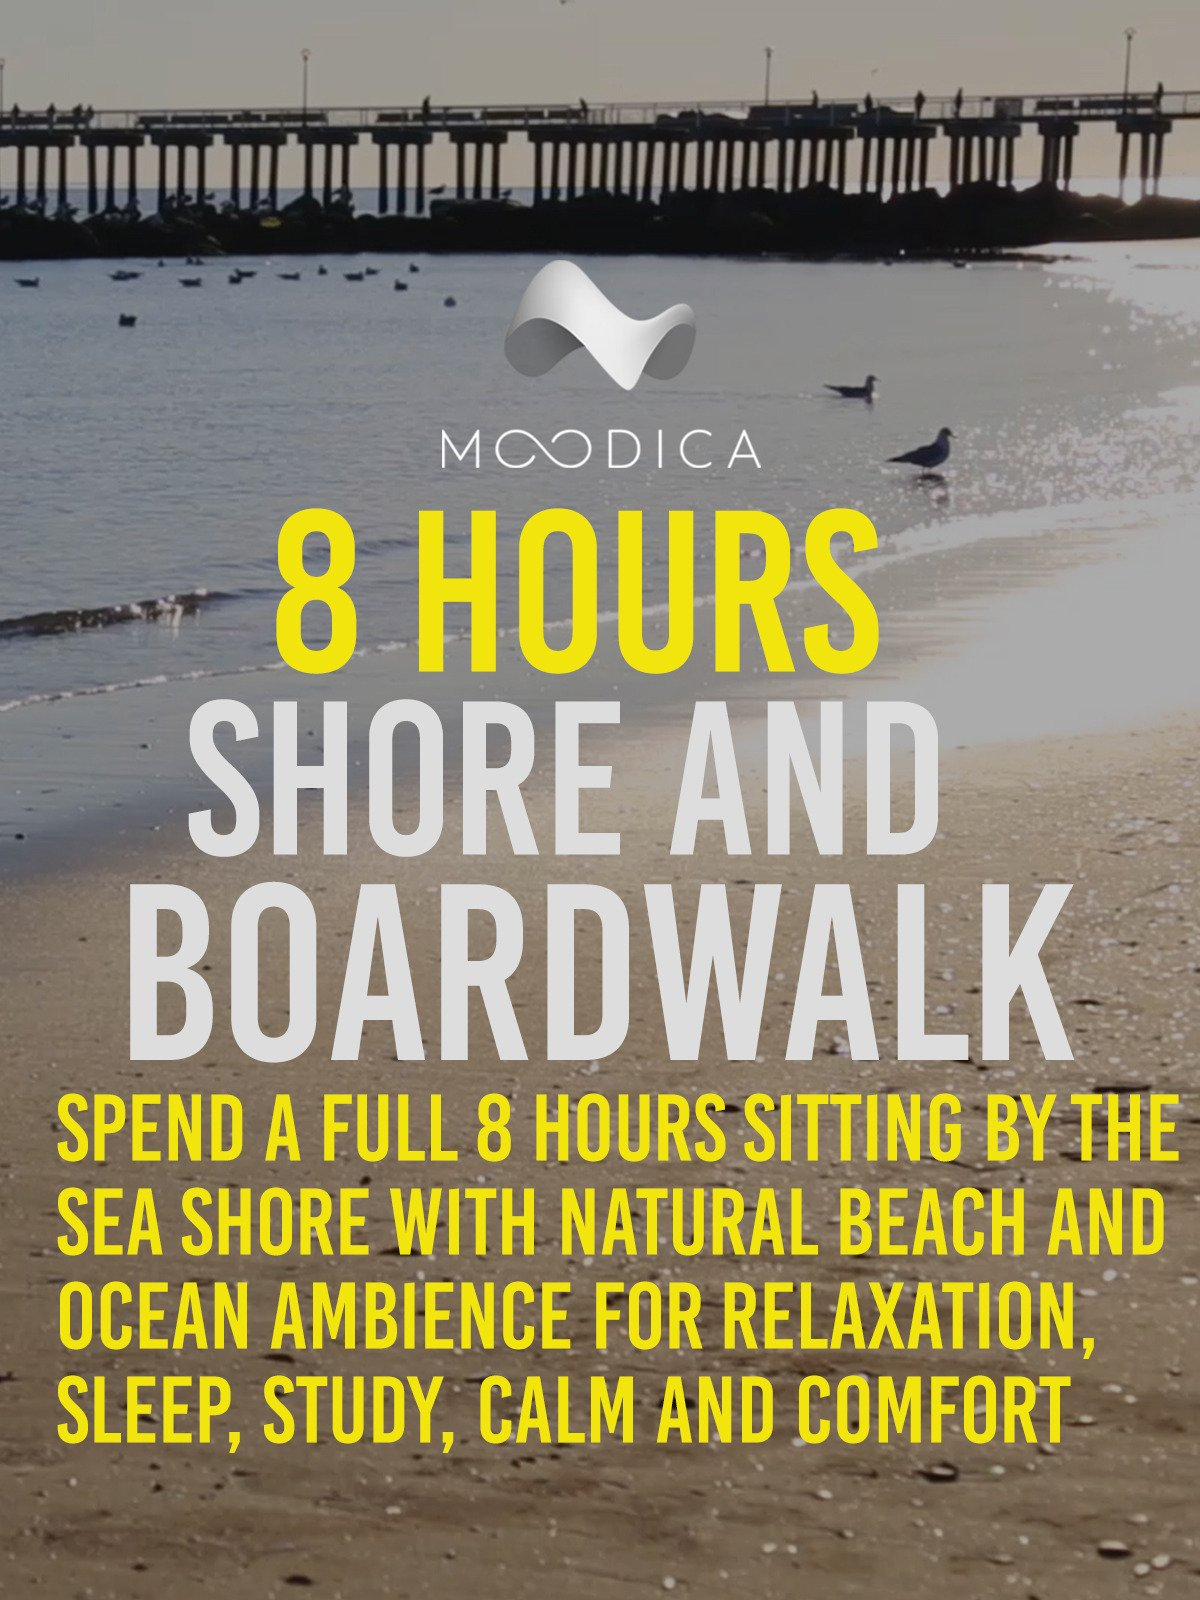 8 Hours: Shore and Boardwalk: Spend A Full 8 Hours Sitting By The Seas Shore With Natural Beach and Ocean Ambience for Relaxation, Sleep, Study, Calm and Comfort